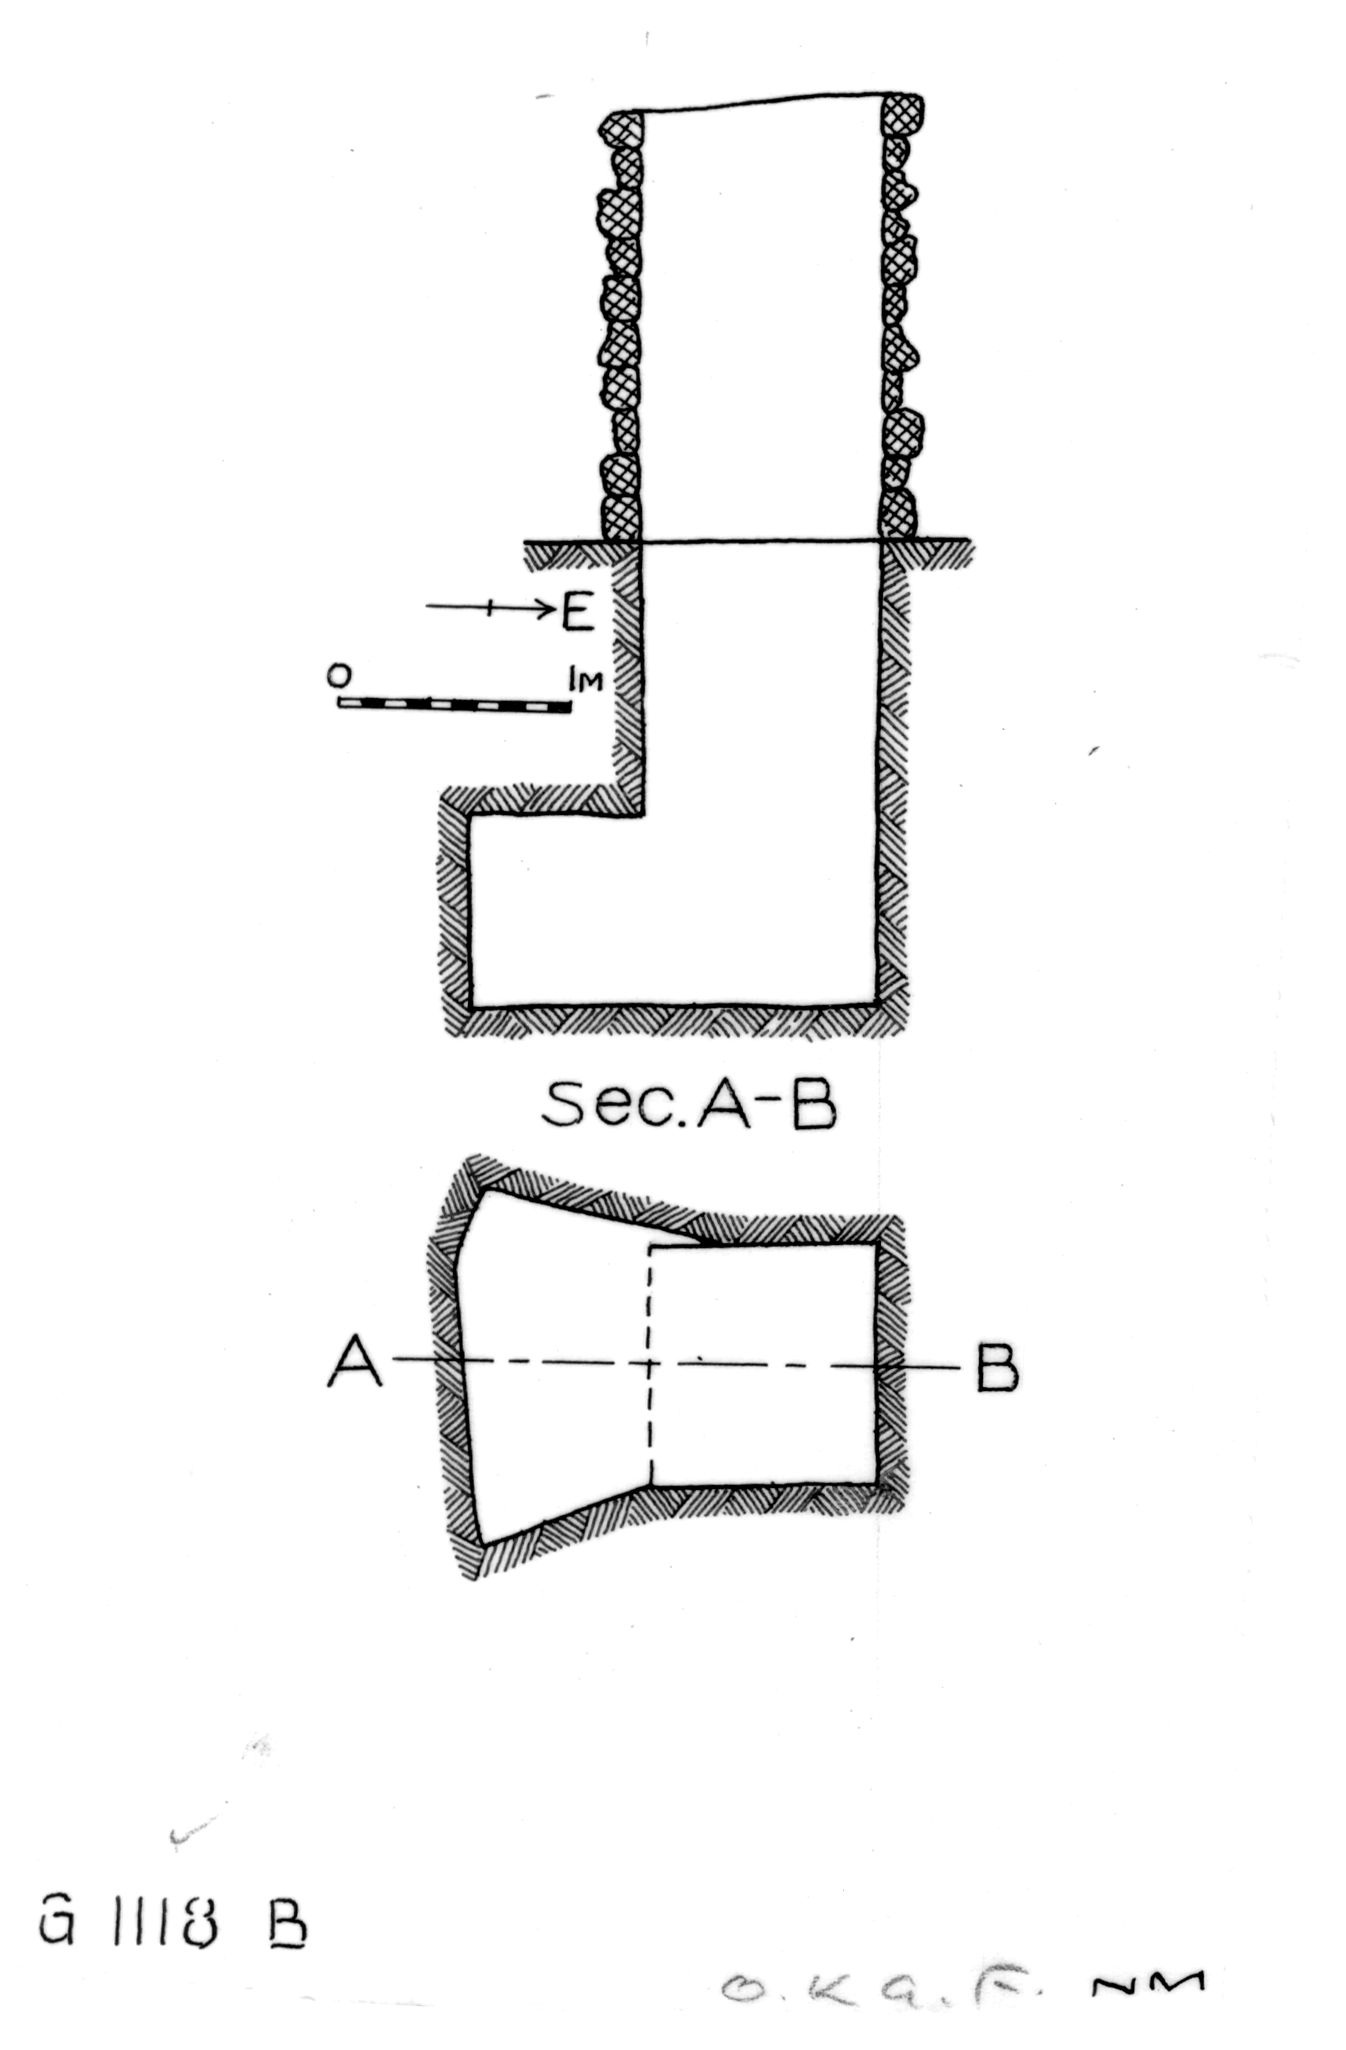 Maps and plans: G 1118, Shaft B